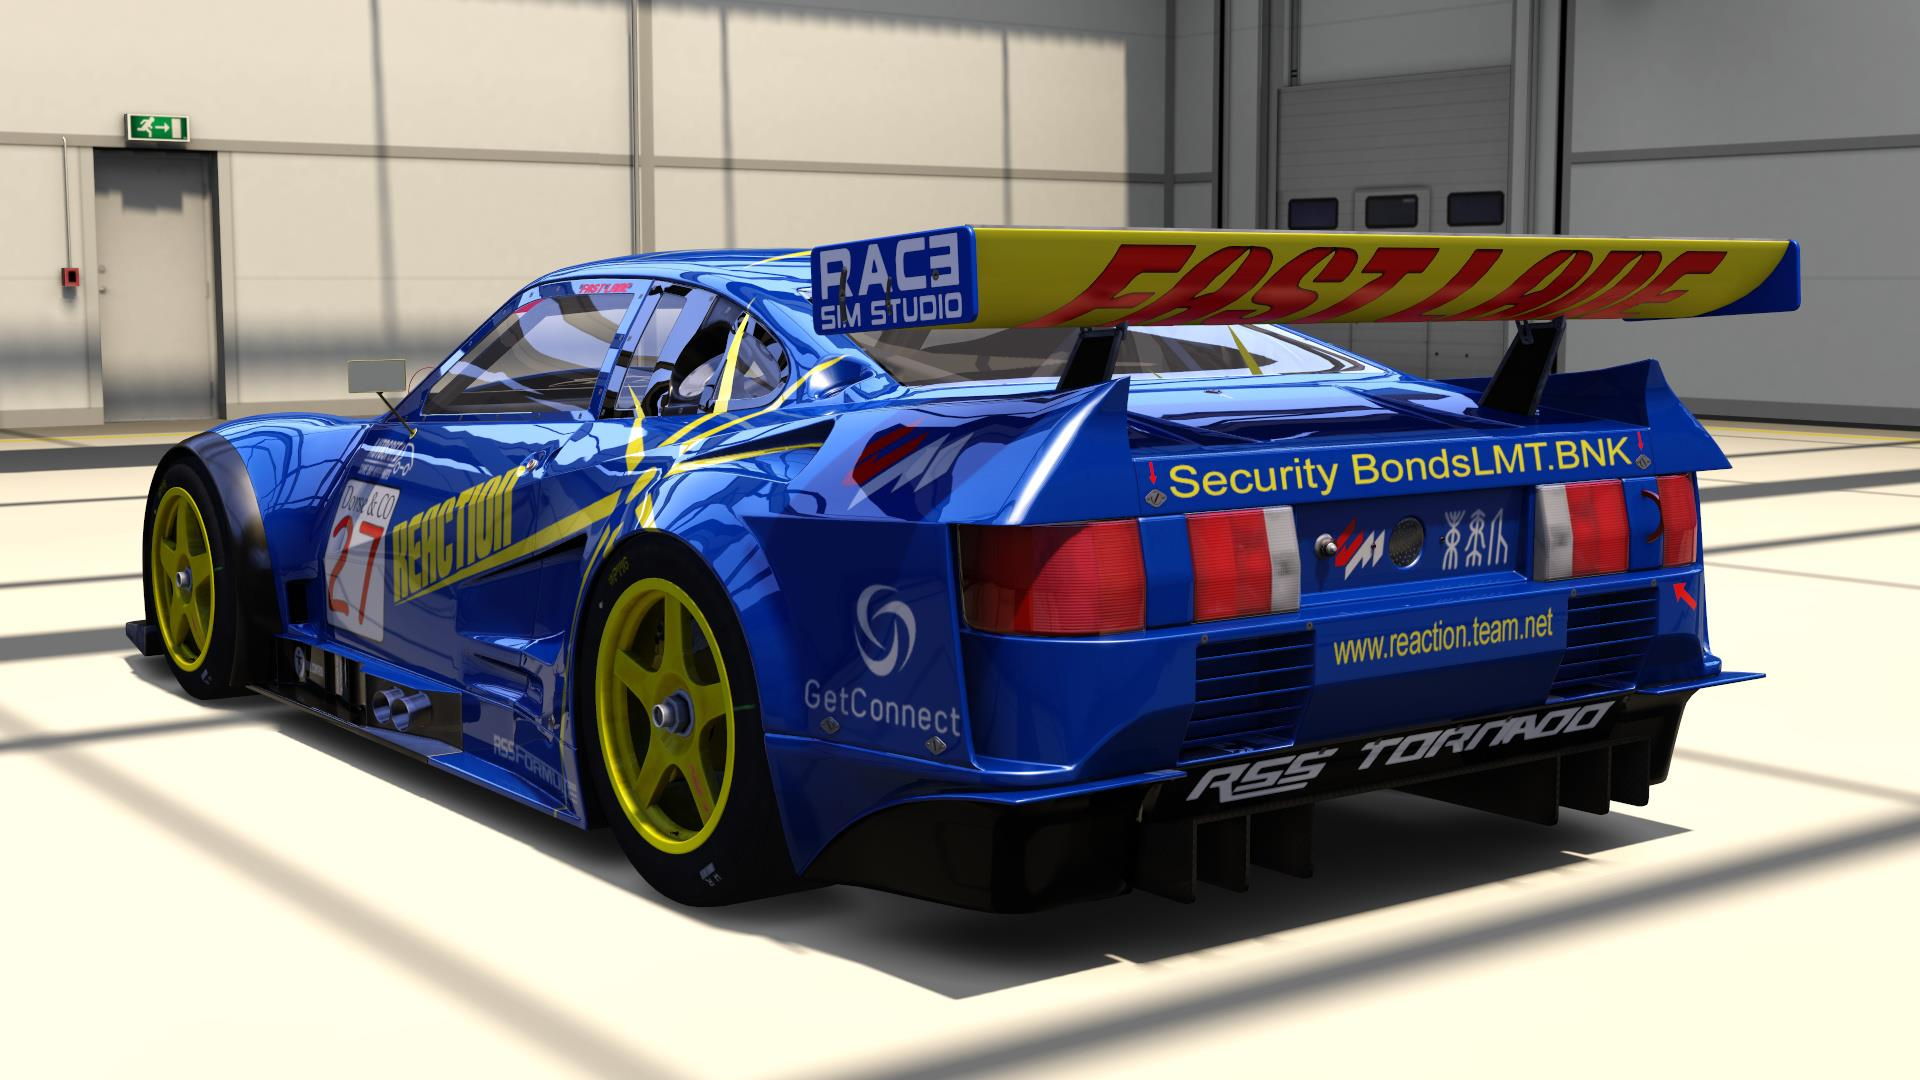 RSS GT Mod release date - Saturday 23rd - RaceSimStudio